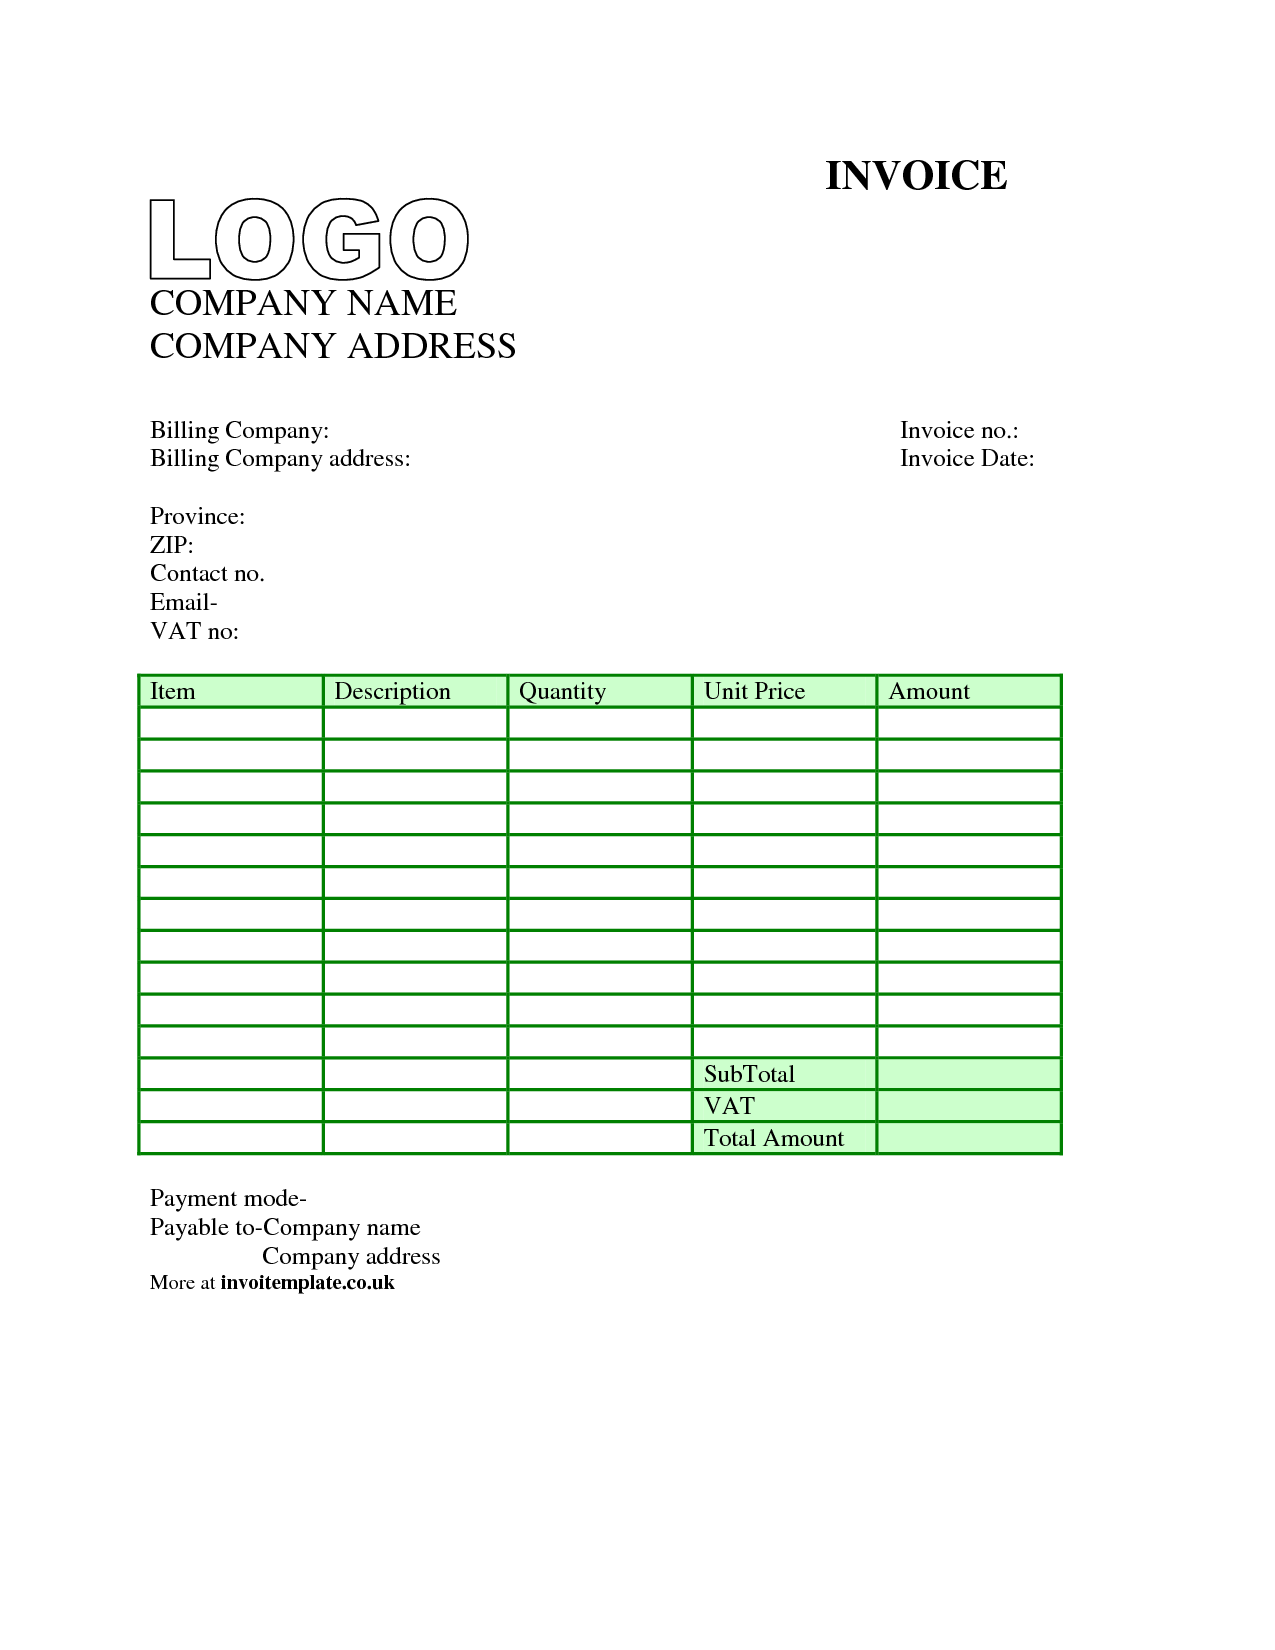 Invoice template uk word invoice example for Plos one word template